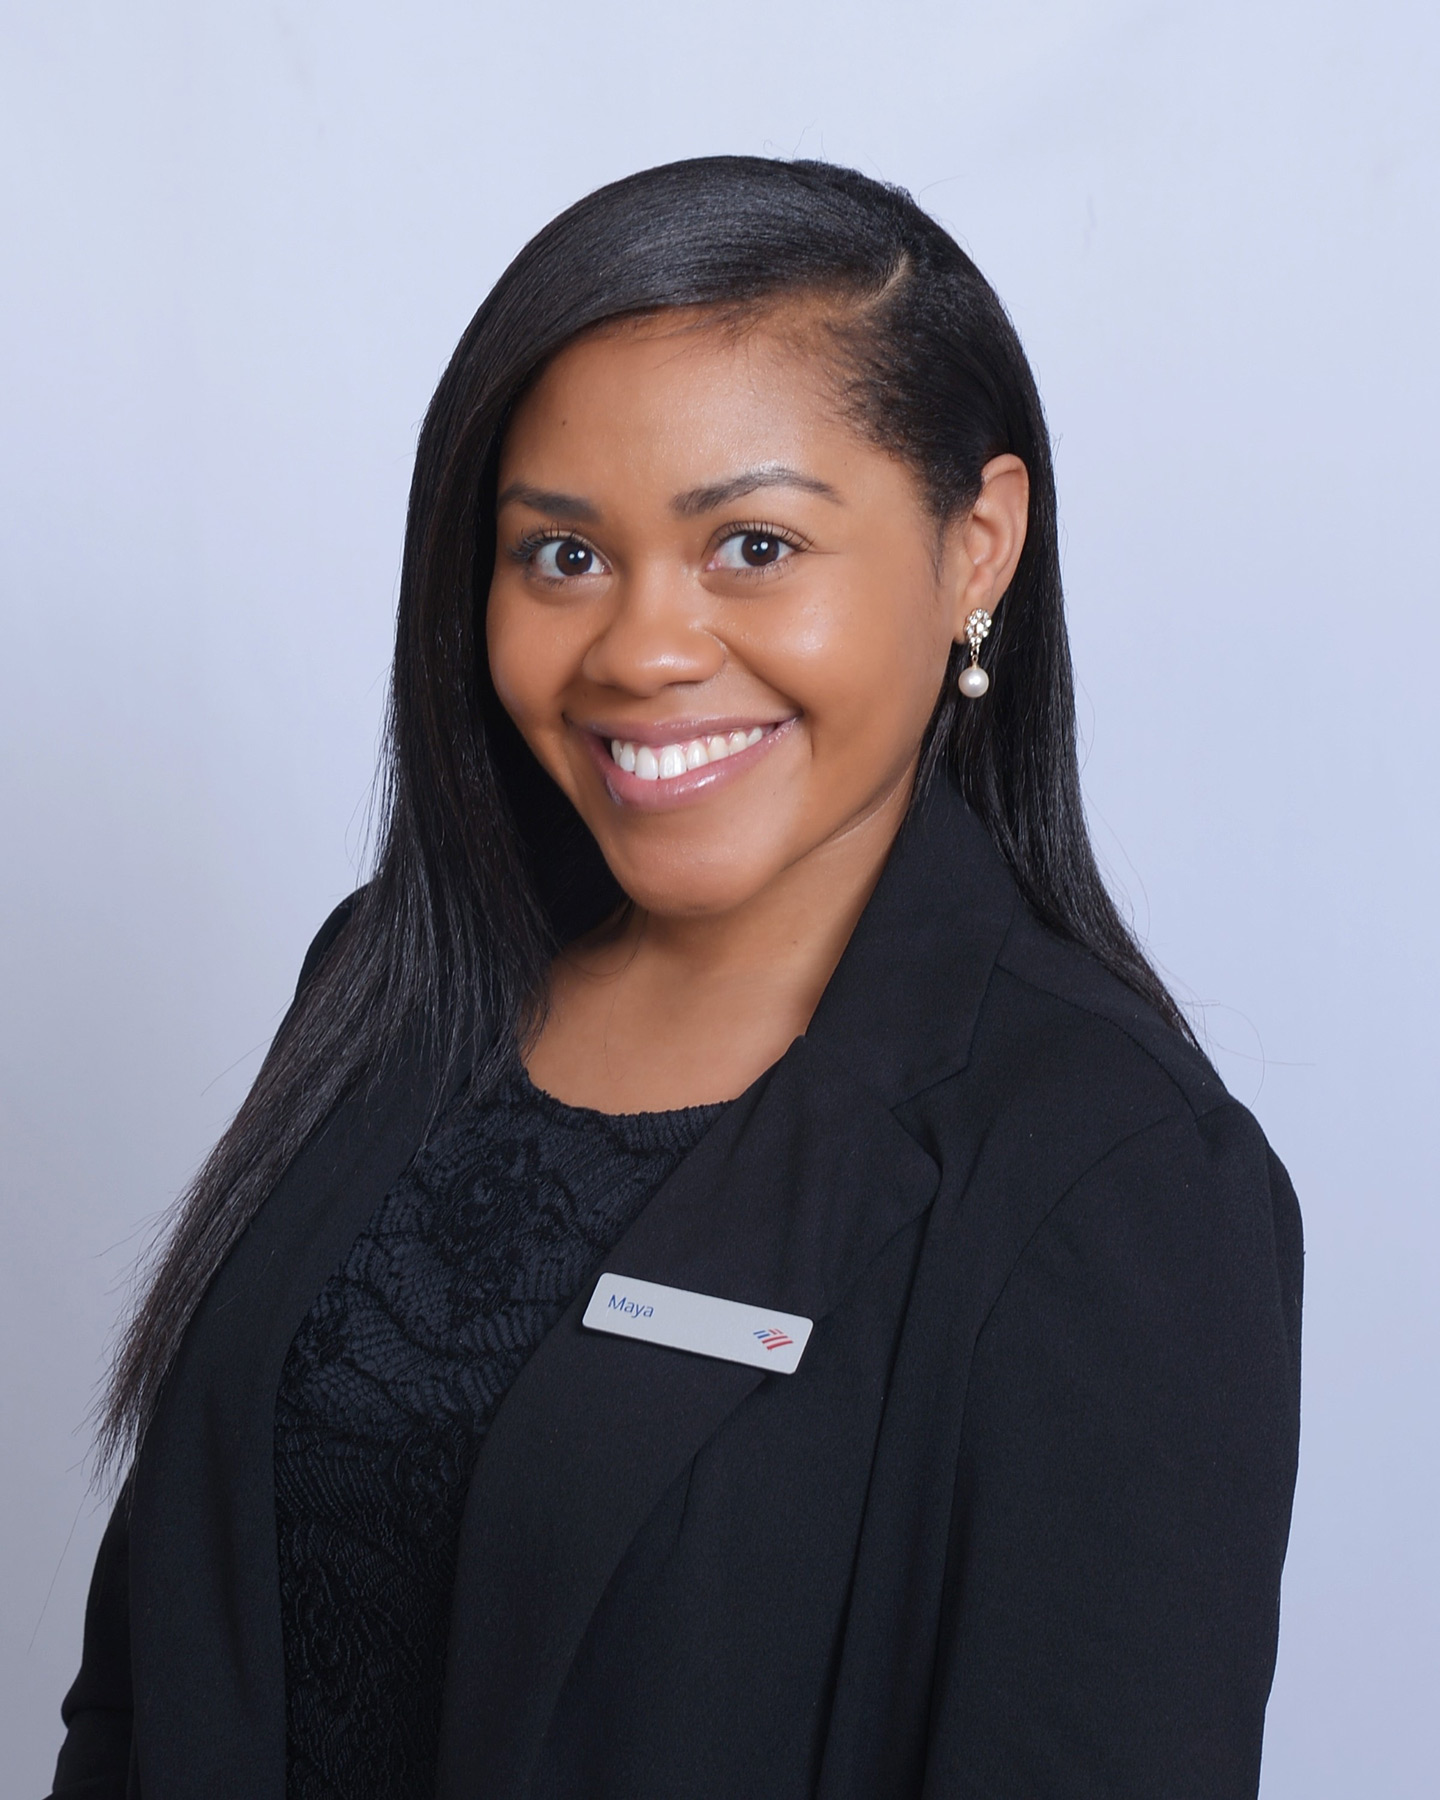 Photo of Bank of America employee Maya Rowe